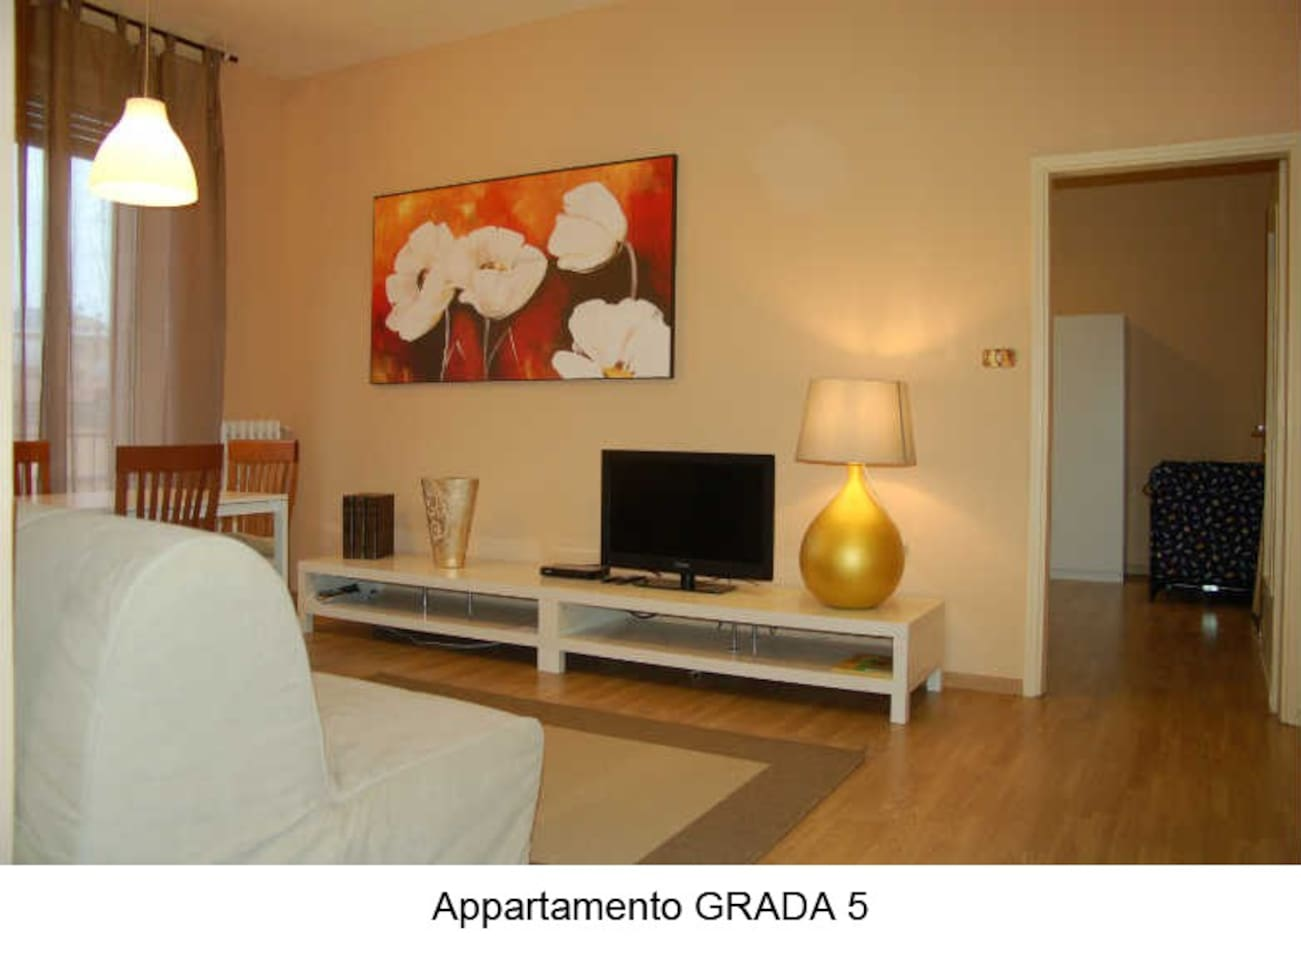 Quiet apartment in the center G5